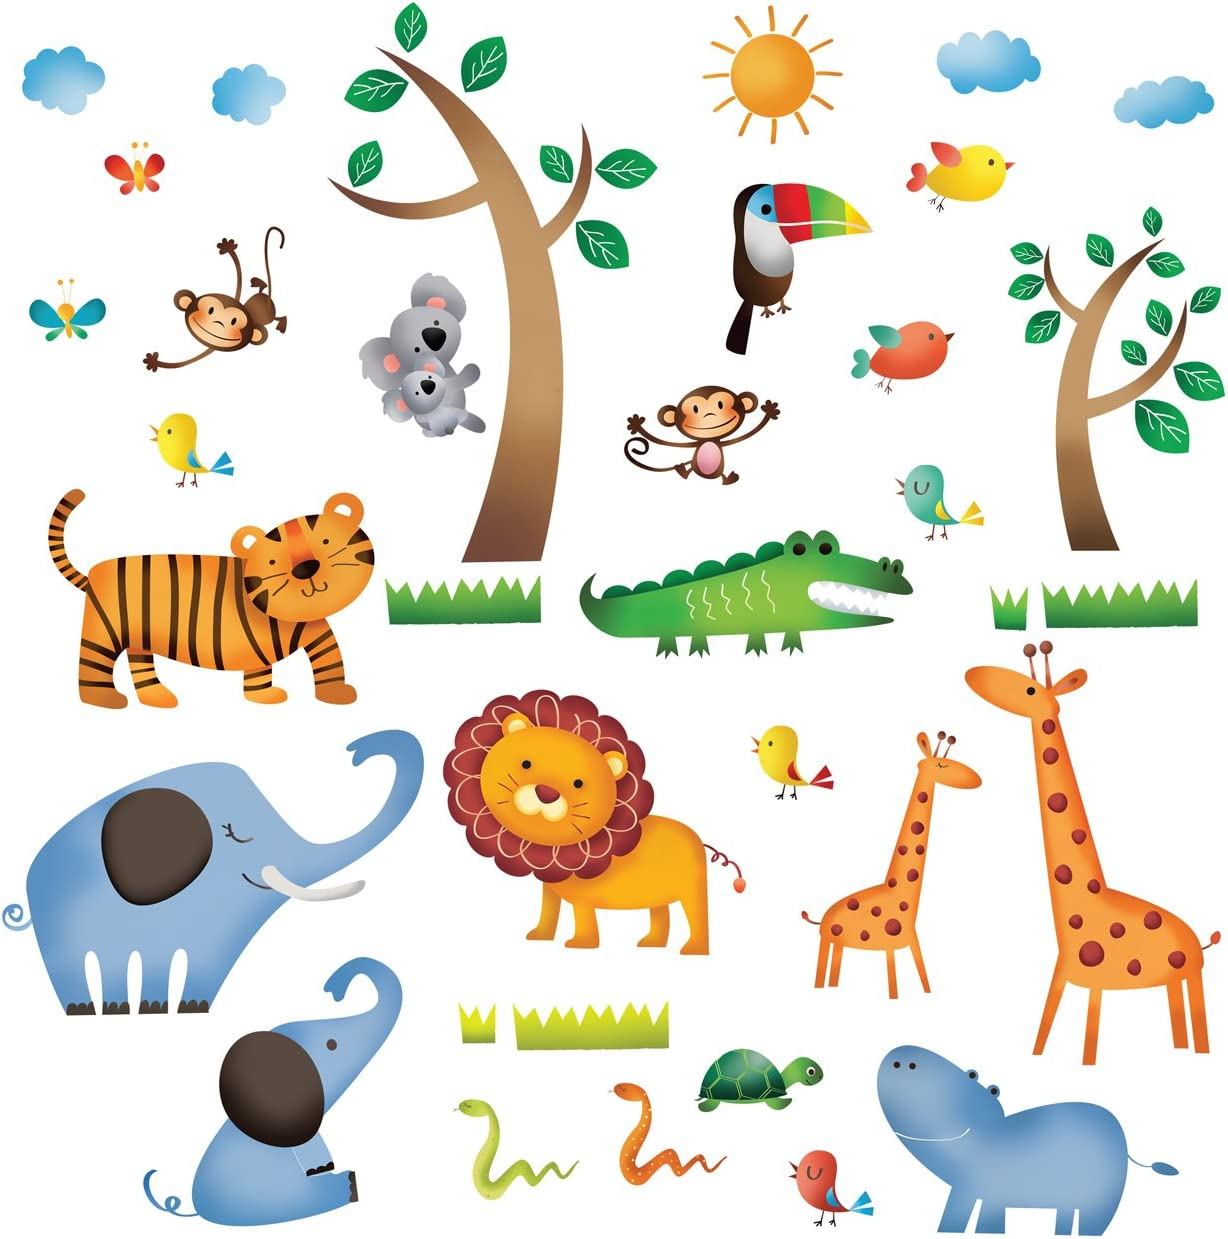 Decowall Dw 1206 Wild Jungle Animals Kids Wall Stickers Wall Decals Peel And Stick Removable Wall Stickers For Kids Nursery Bedroom Living Room Amazon Co Uk Baby